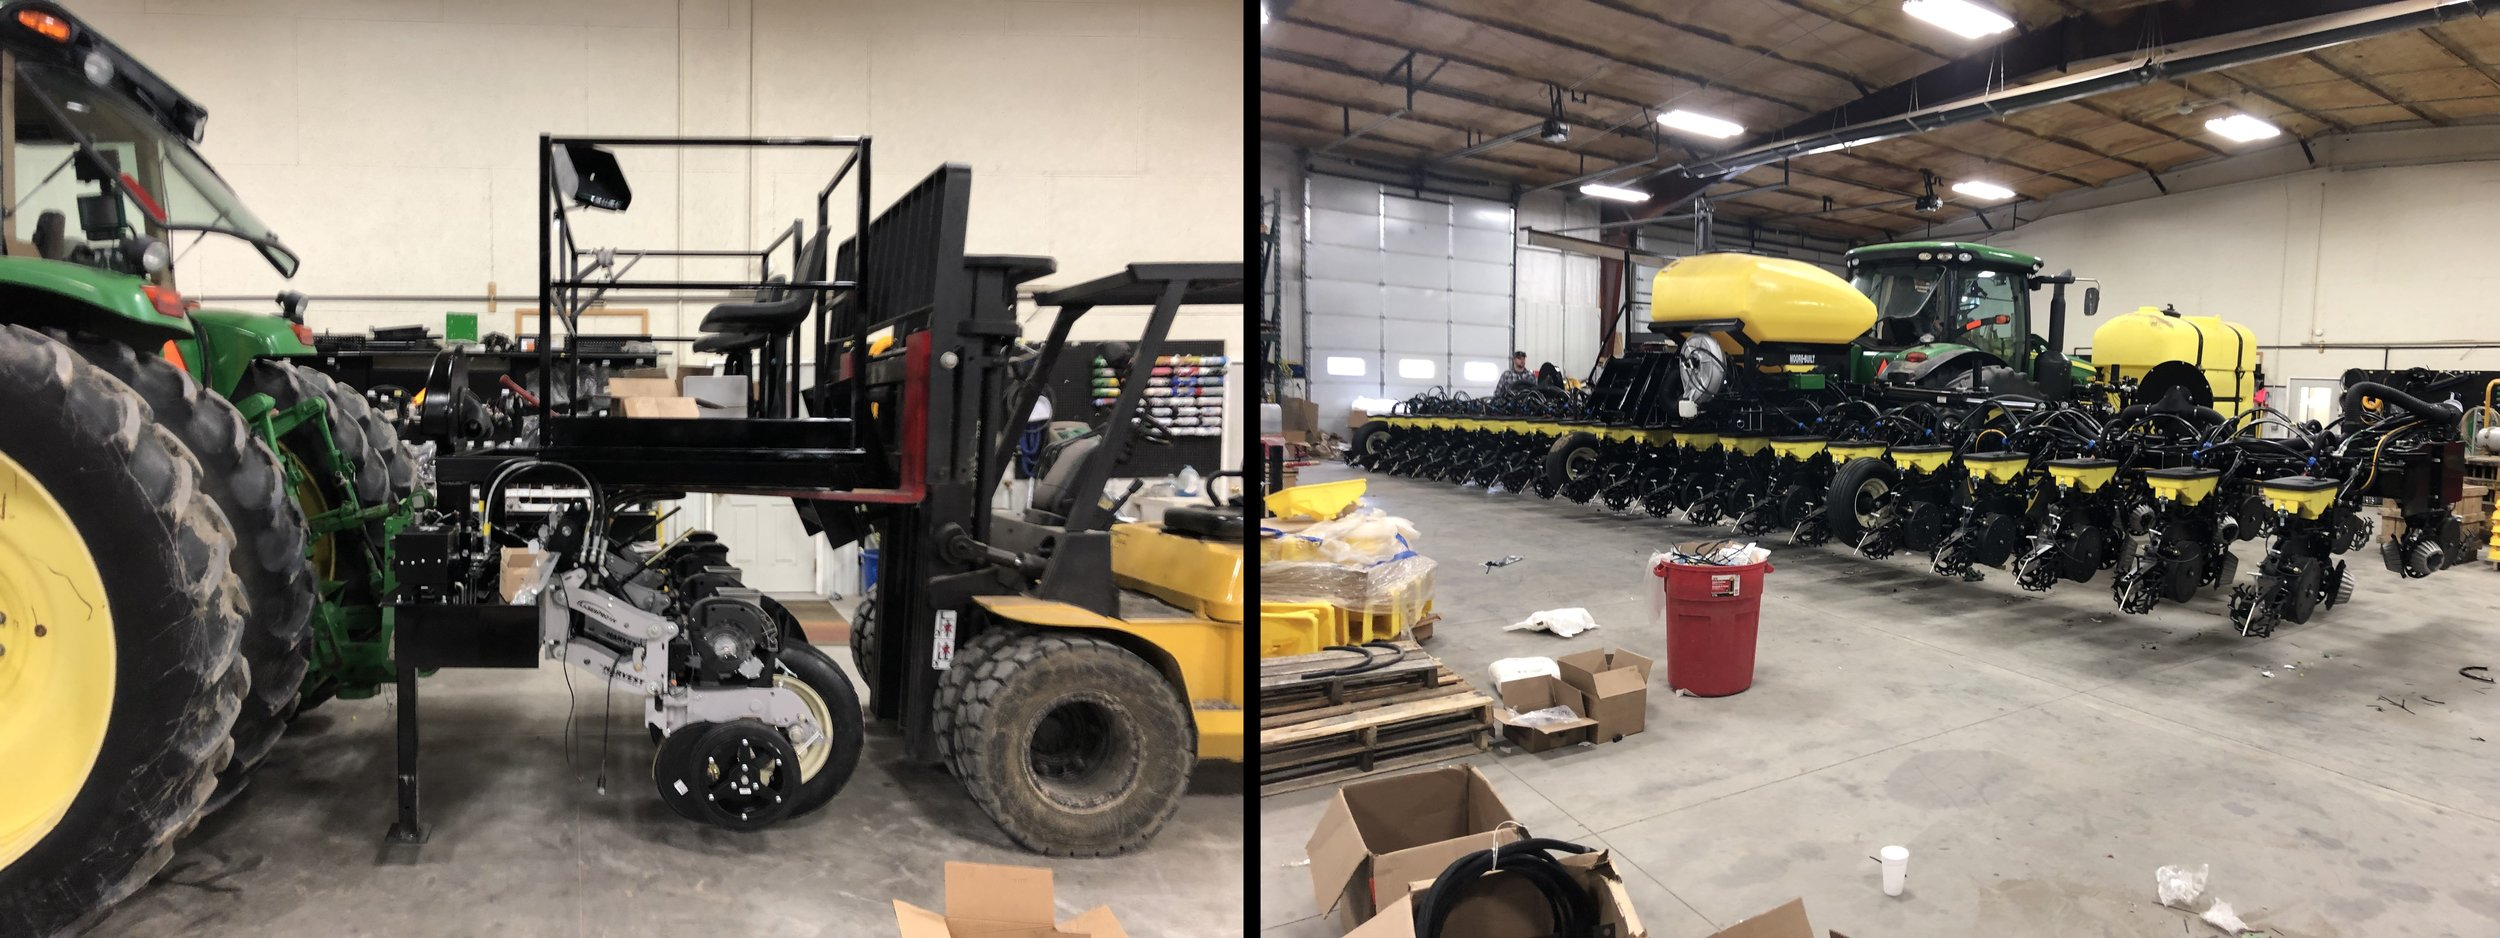 4 Row Specialty Test-Plot Planter with custom fabrication and variable spacing